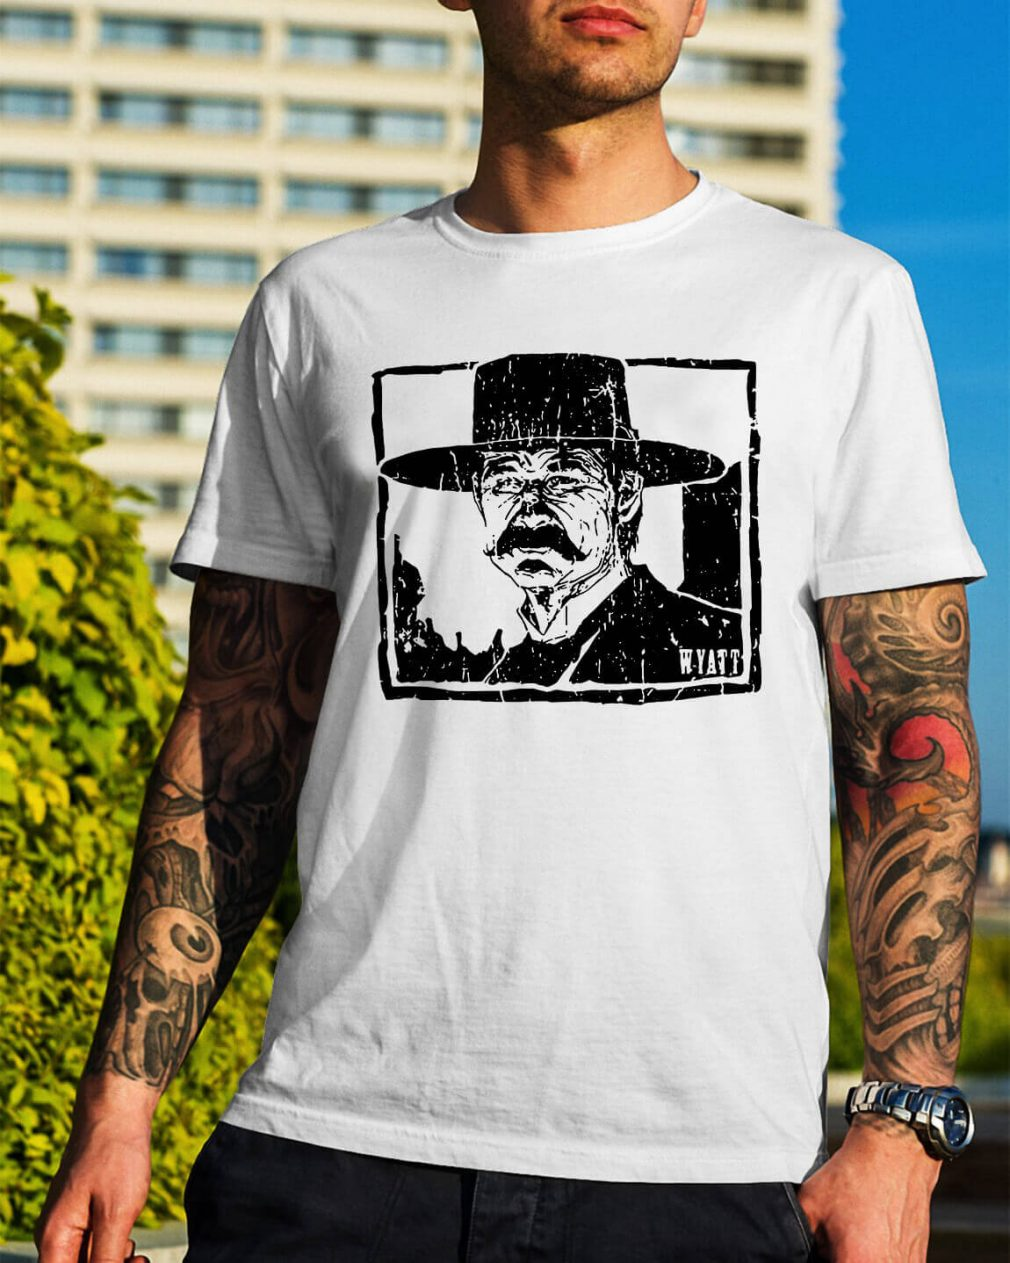 Wyatt Earp - Warrior culture gear you tell him I'm coming shirt